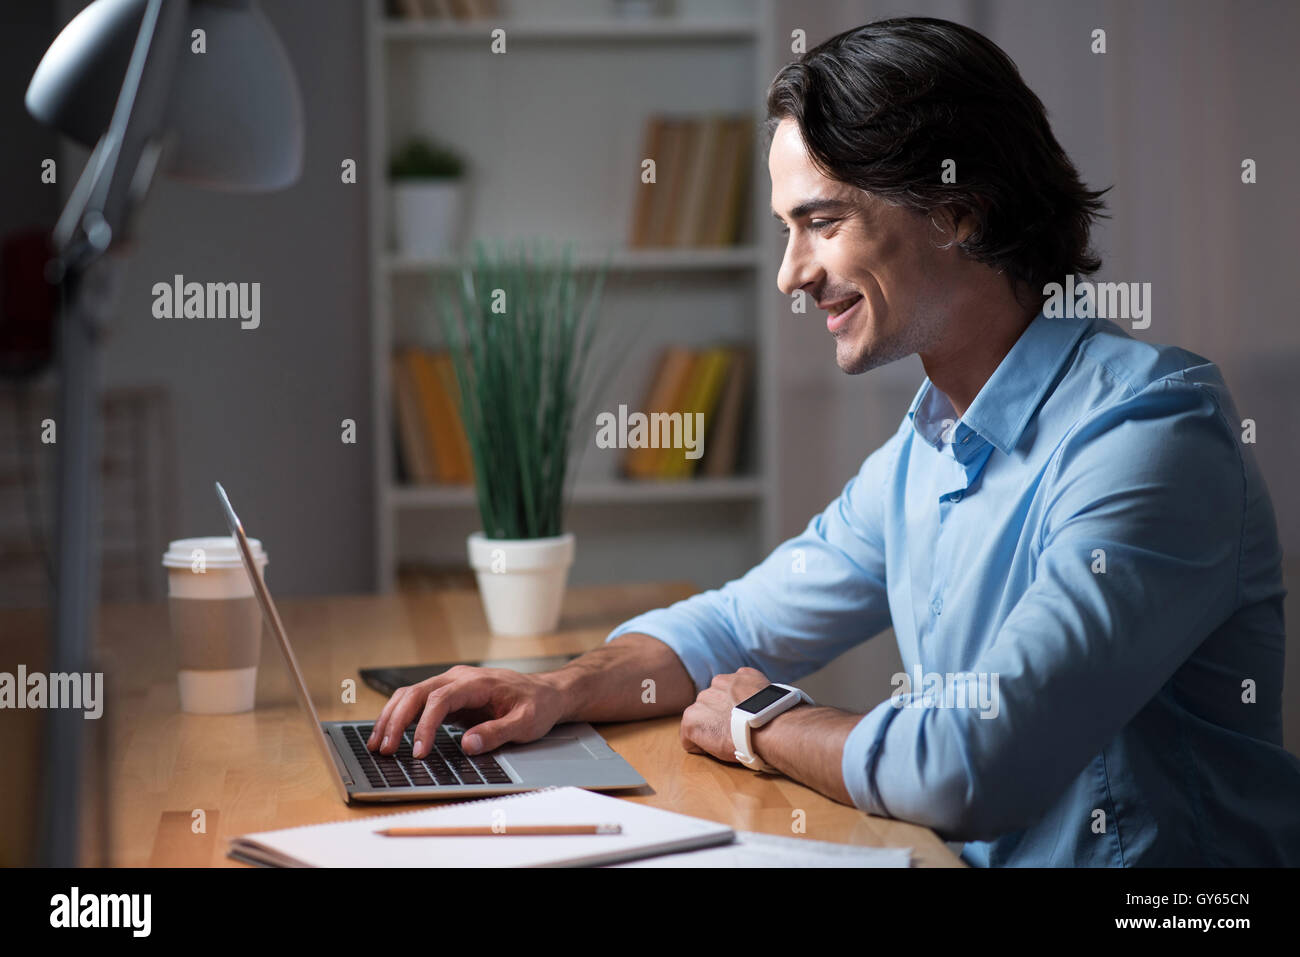 Good looking man working on laptop. - Stock Image